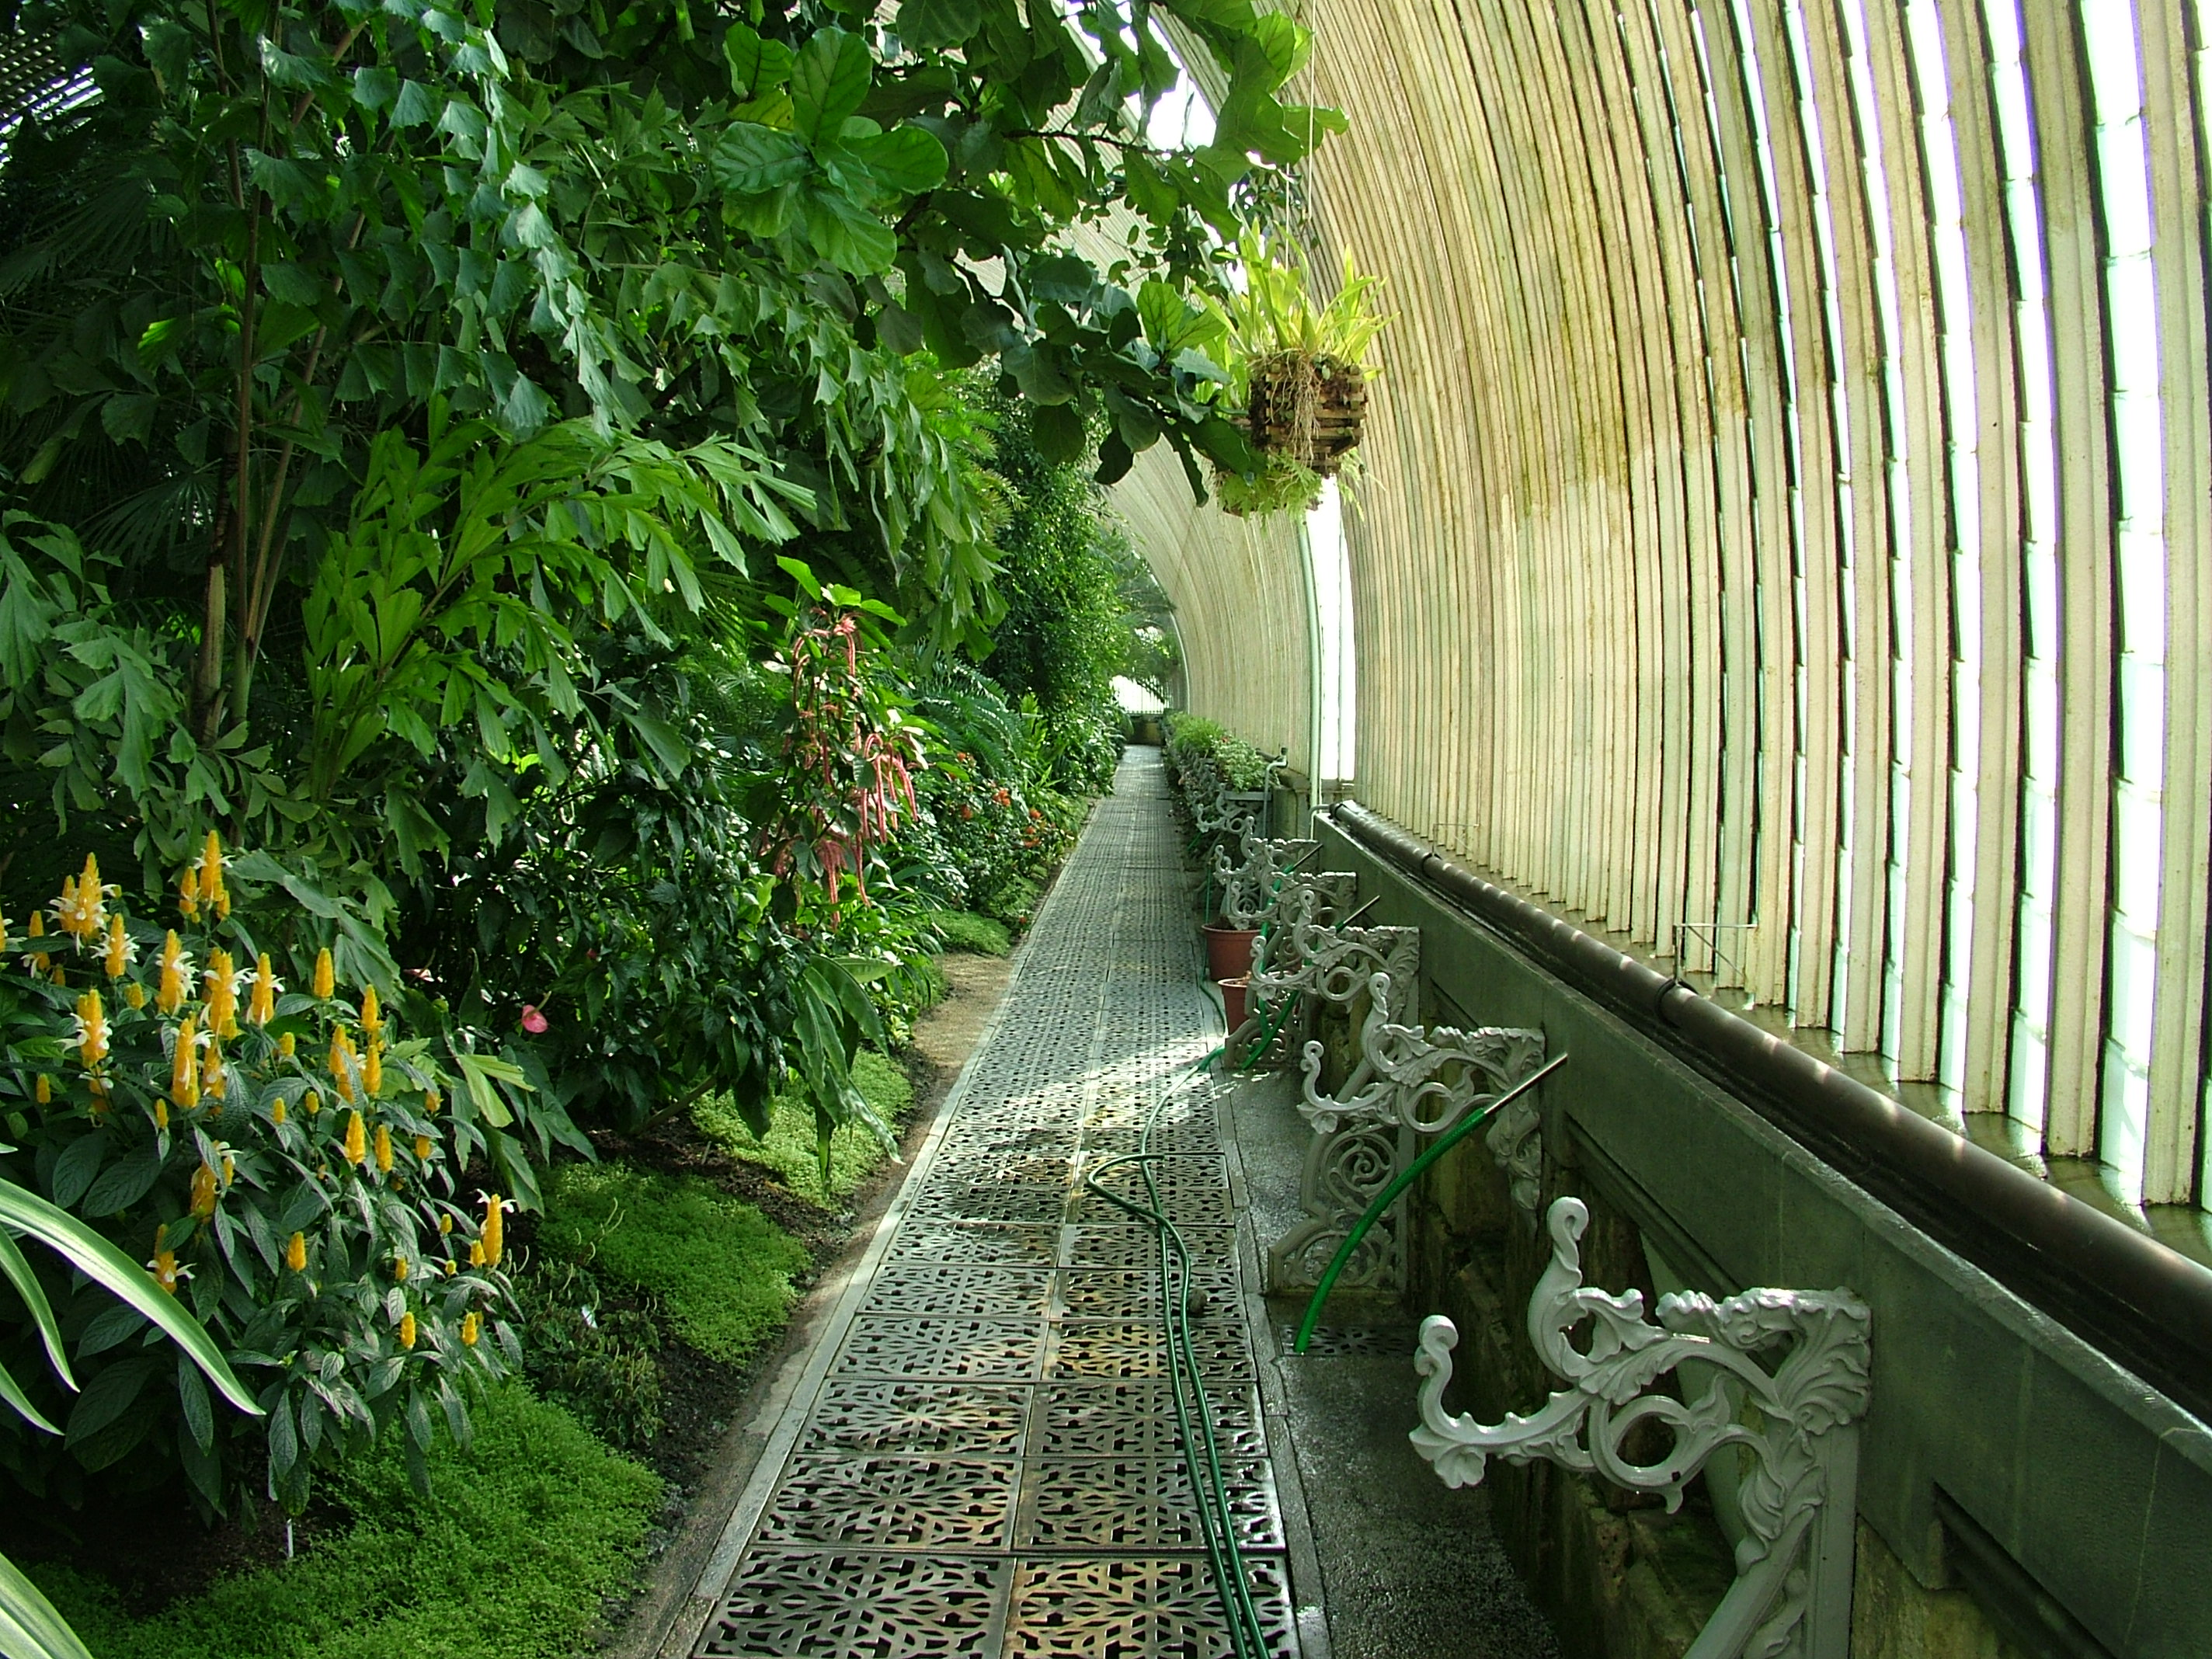 Chateau greenhouse in the Lednice-Valtice Cultural Landscape